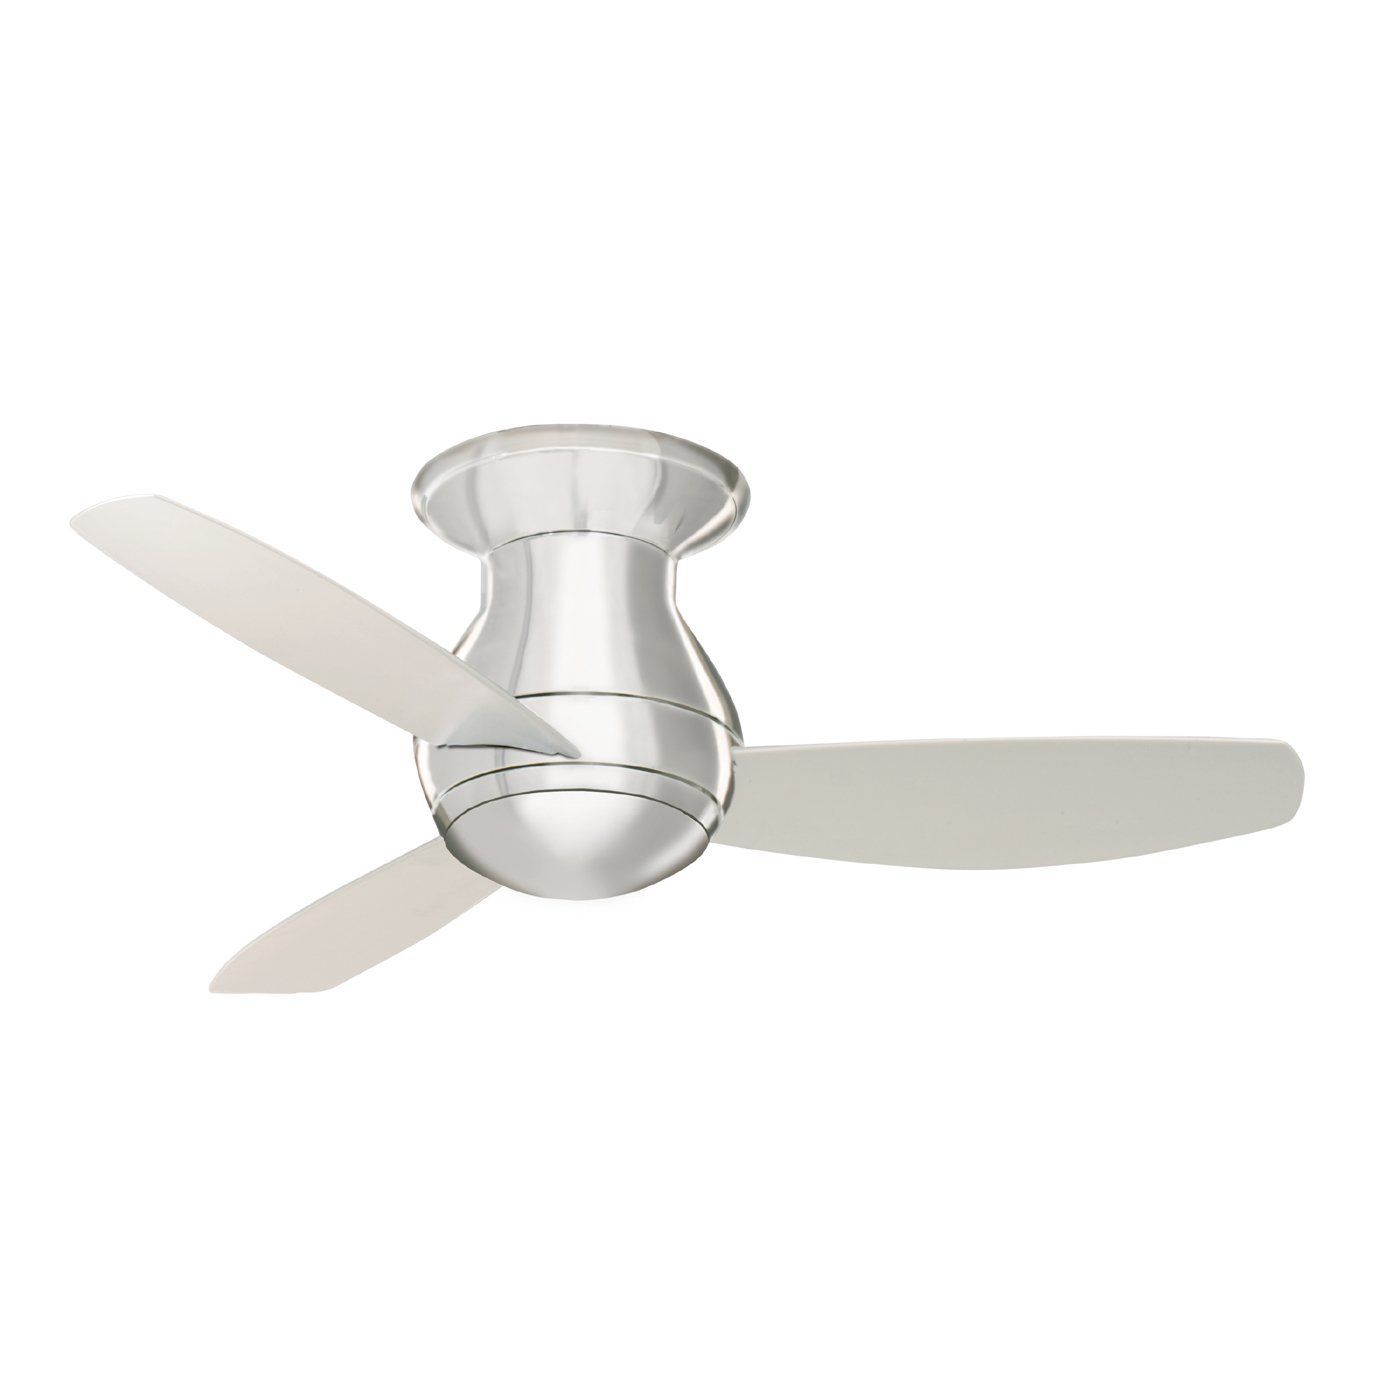 Emerson electric cf144orb 2 light 44 curva sky ceiling fan emerson electric cf144orb 2 light 44 curva sky ceiling fan aloadofball Image collections